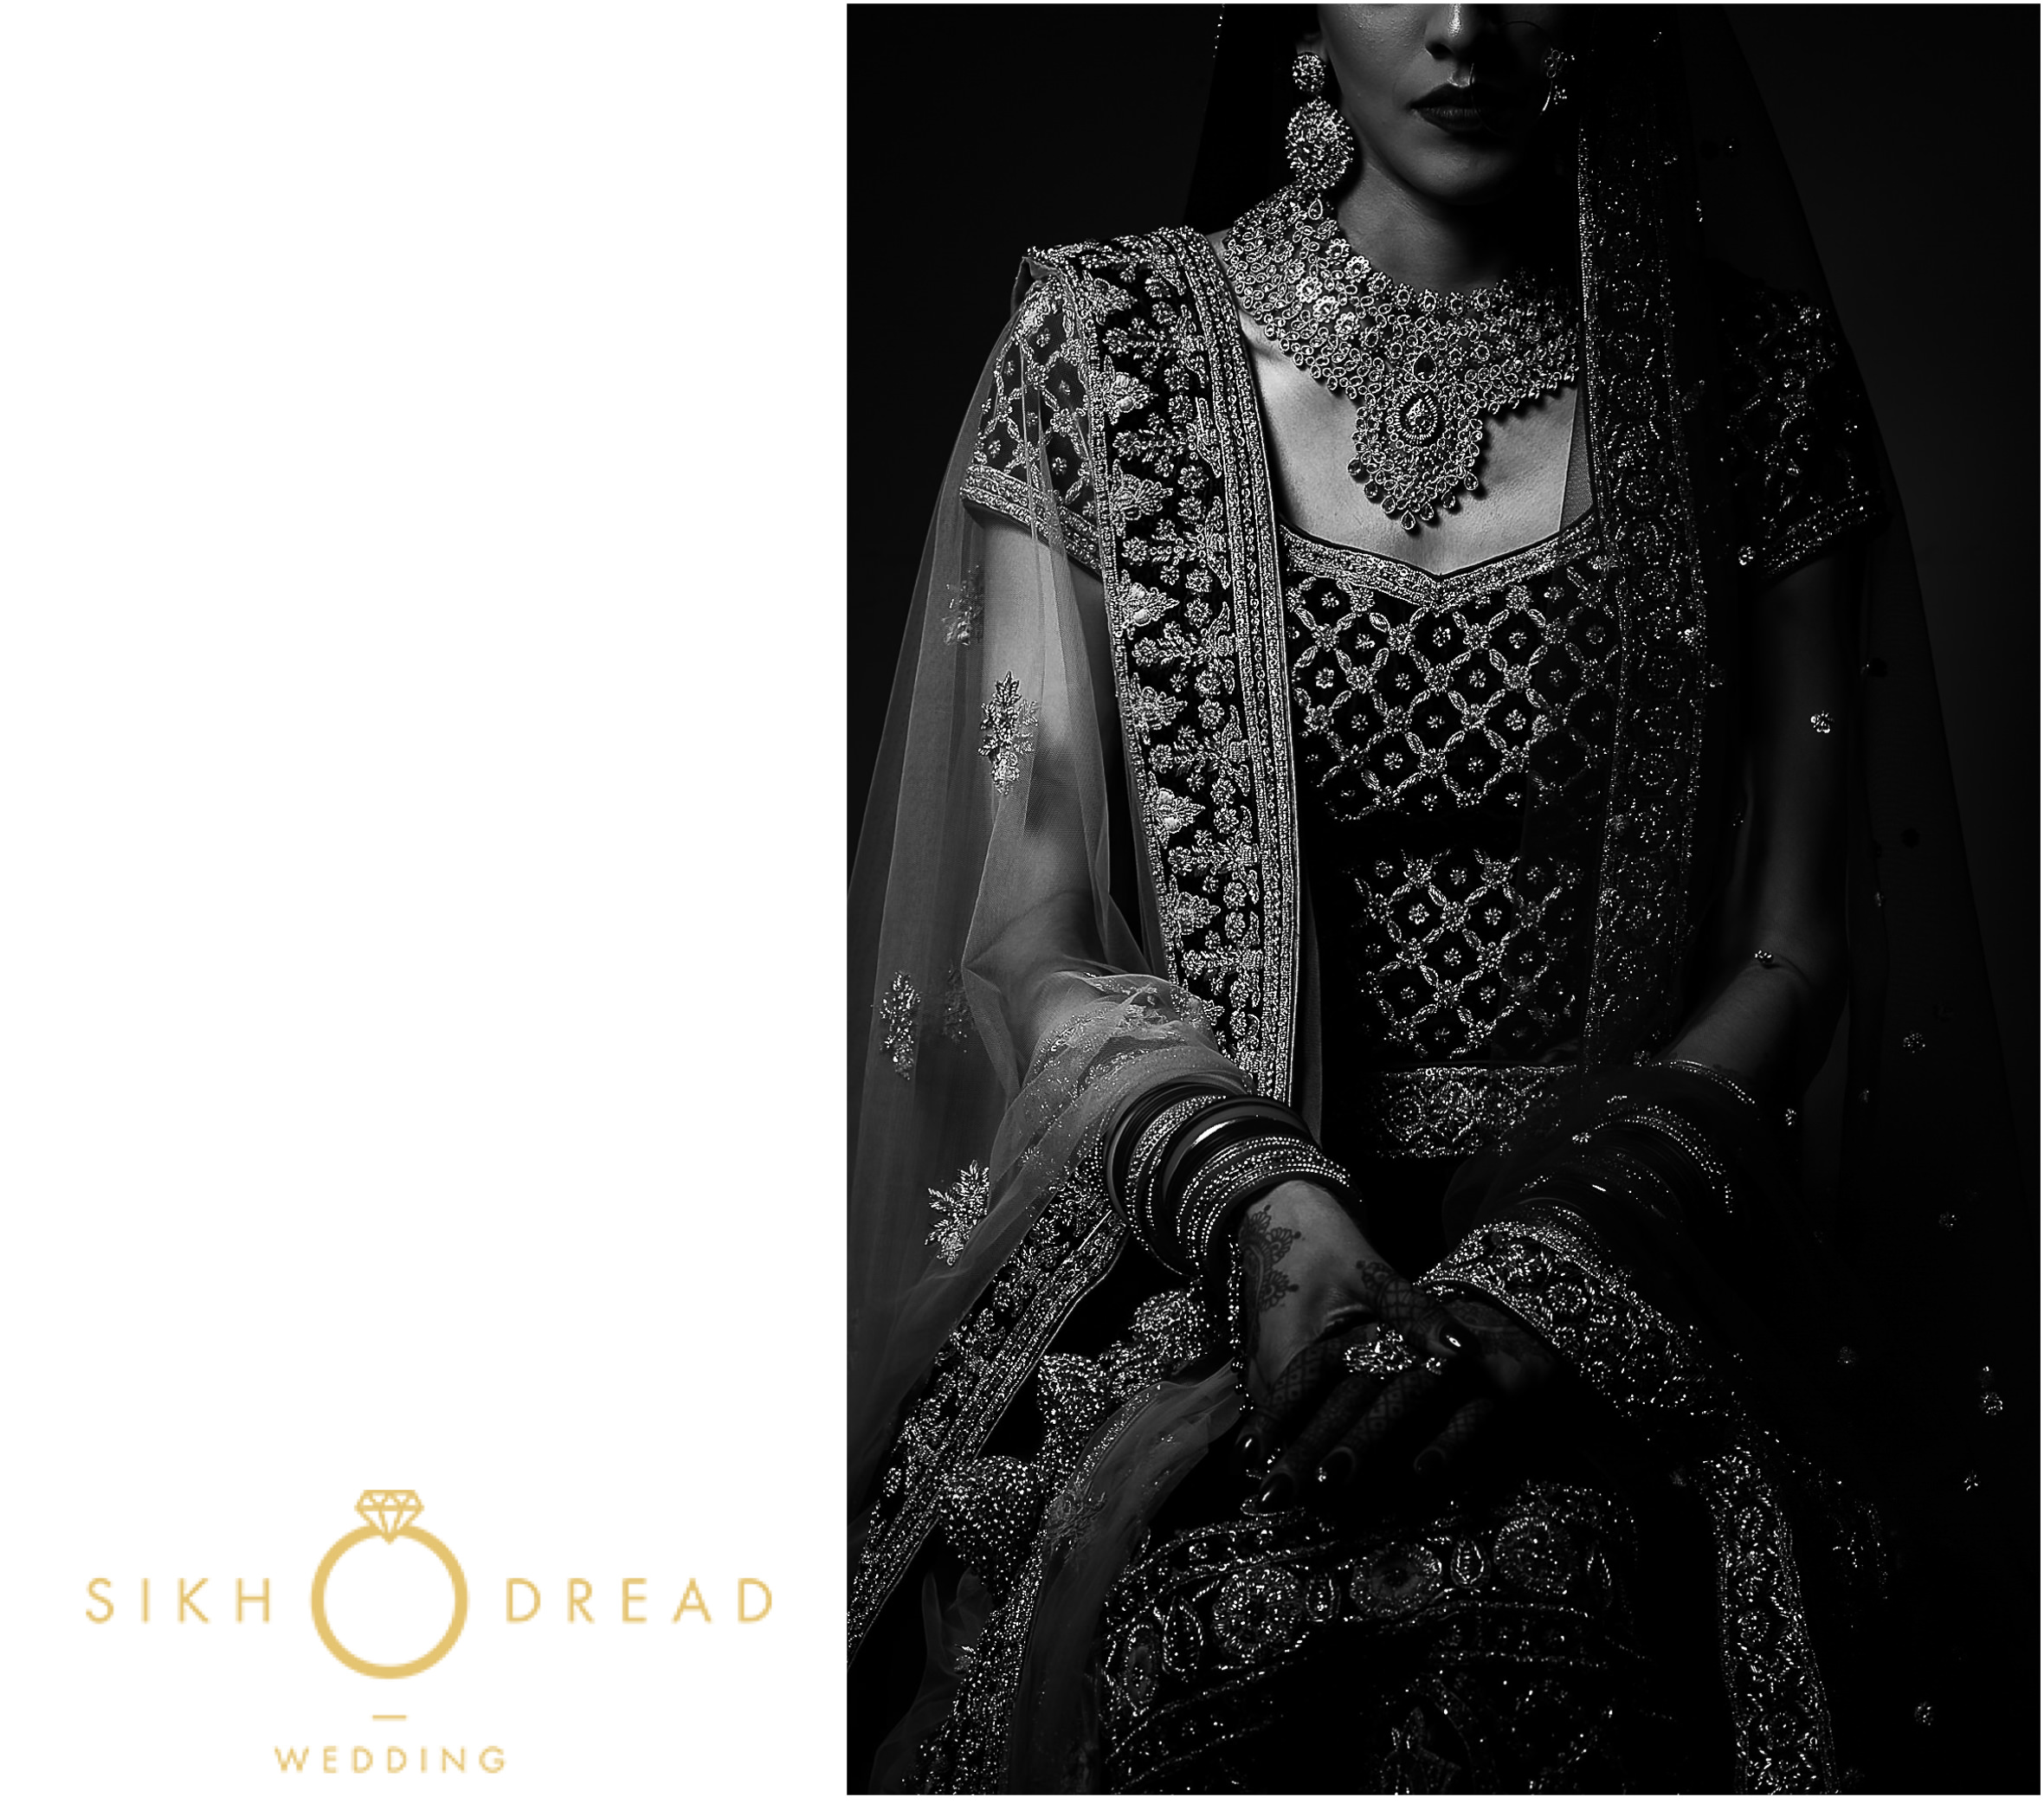 best indian wedding photographers 03 - by Sikhanddread